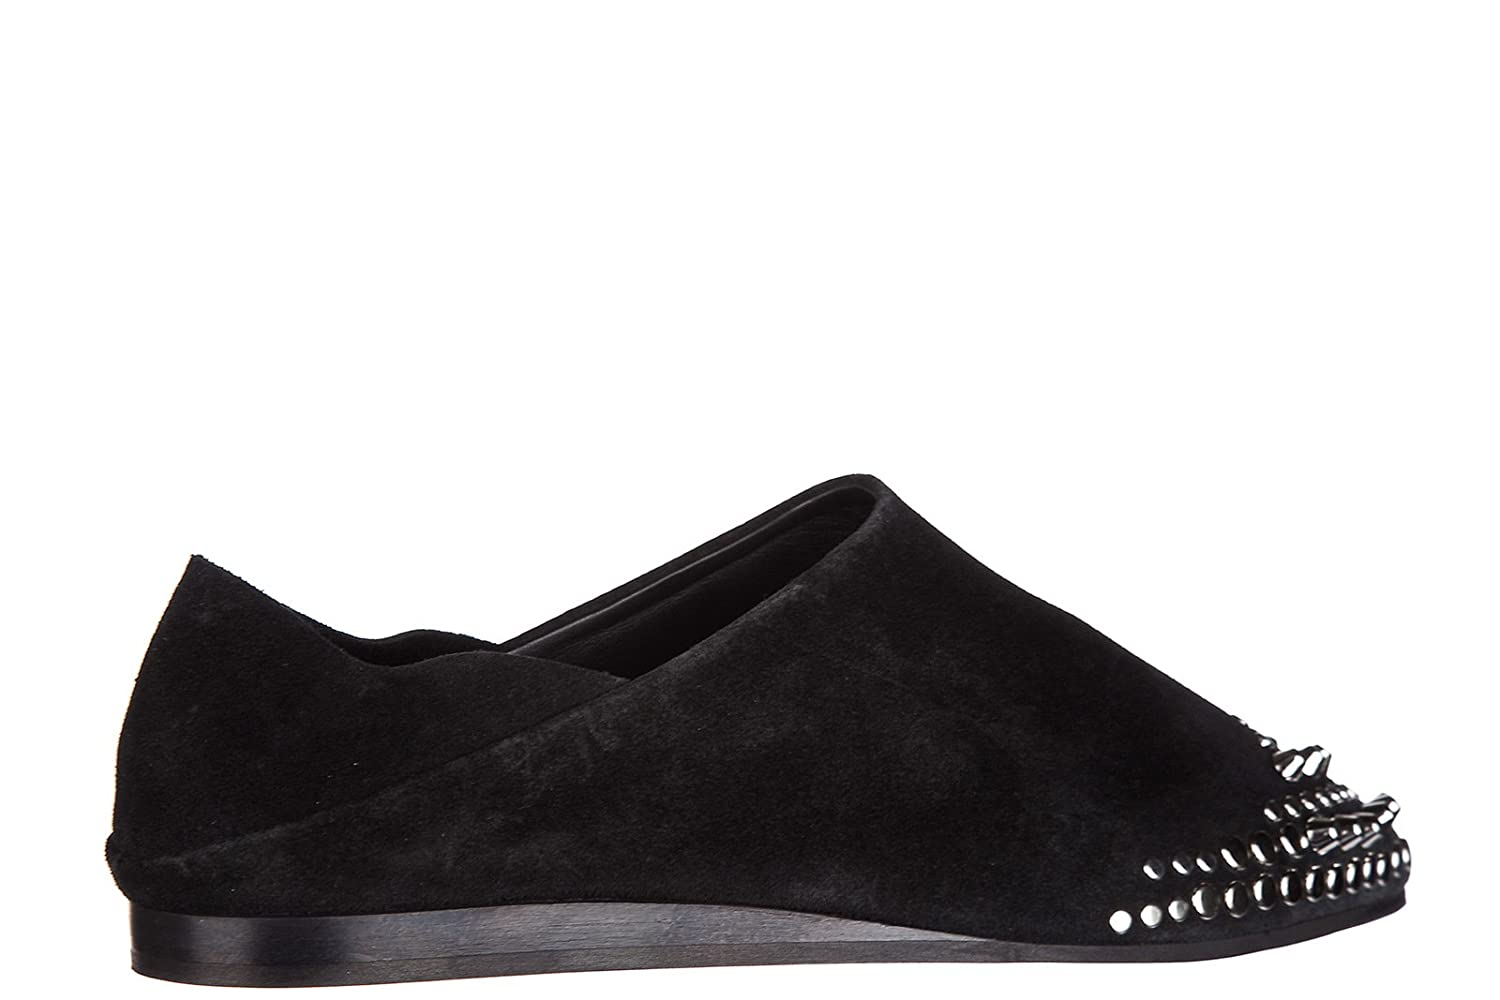 dfd0189b6a McQ Alexander McQueen Women s Suede Ballet Flats Ballerinas Liberty Fold  Black UK Size 7 447265 R2407 1000  Amazon.co.uk  Shoes   Bags